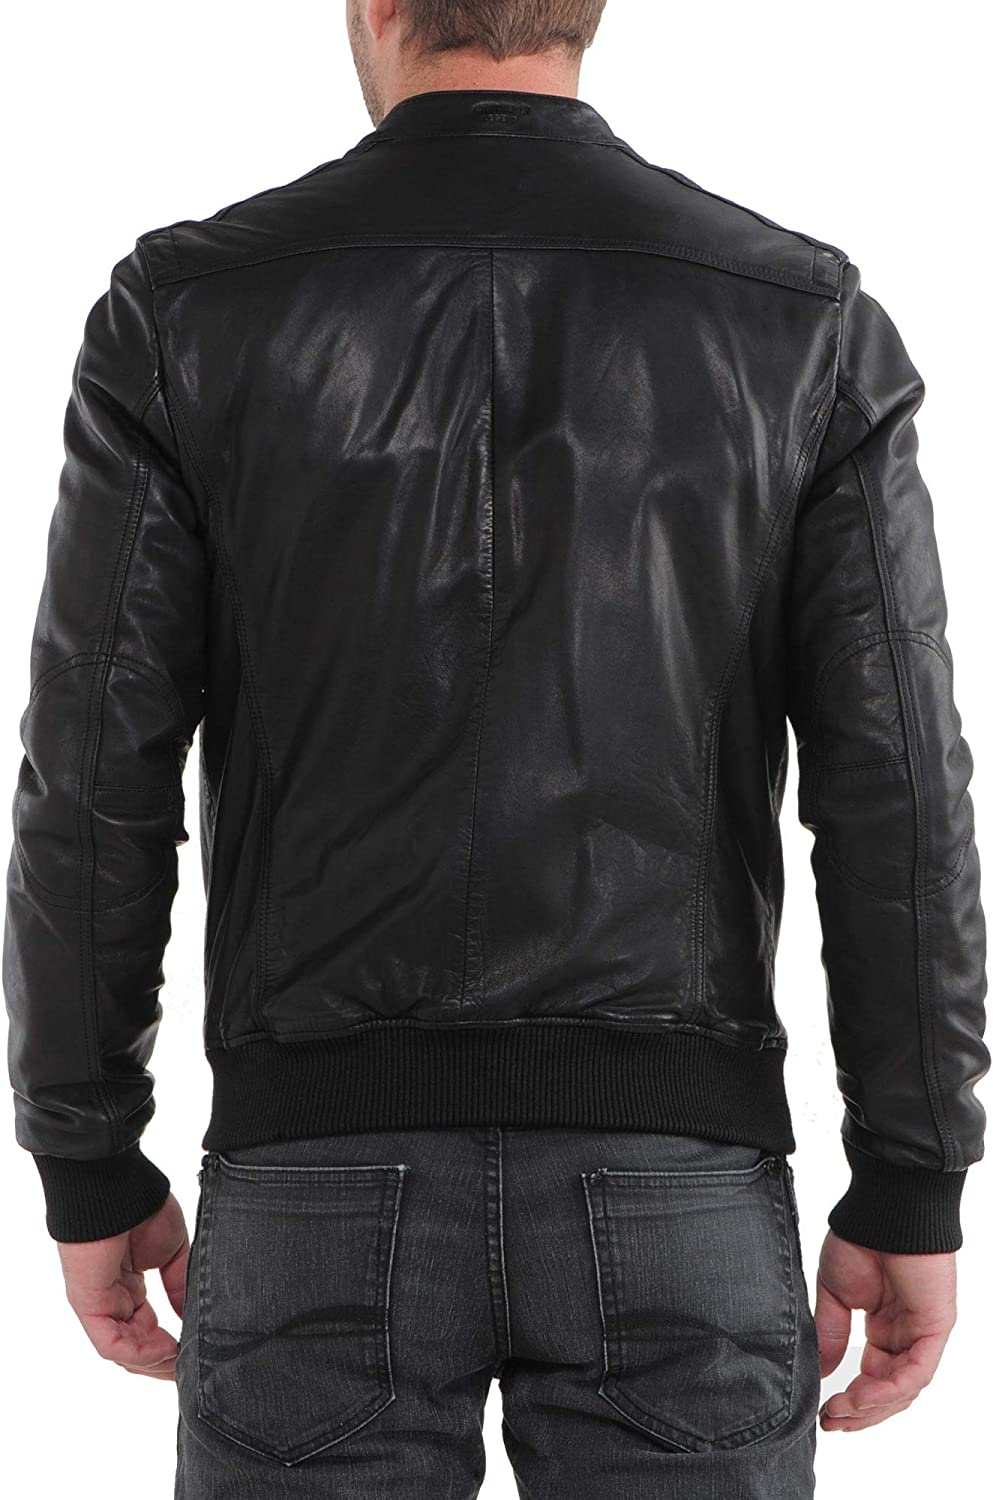 Skin2Fashion Mens Leather Jackets 154